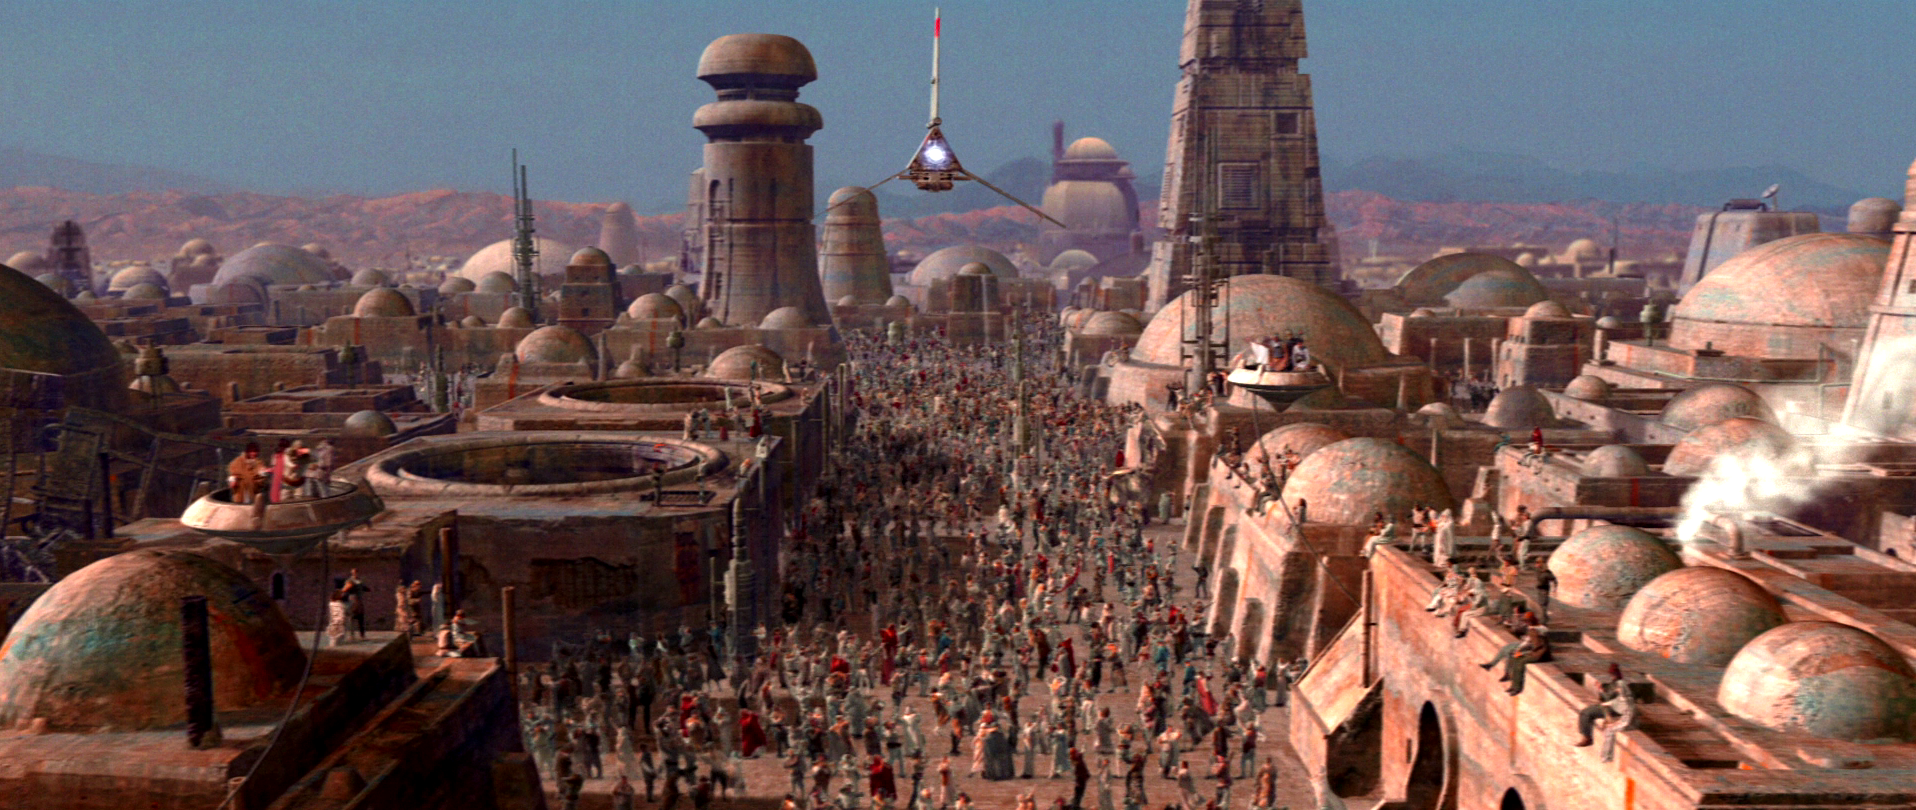 Final shot from Return of the Jedi: Special Edition. Celebration on Tatooine. I'm in there somewhere as an extra.